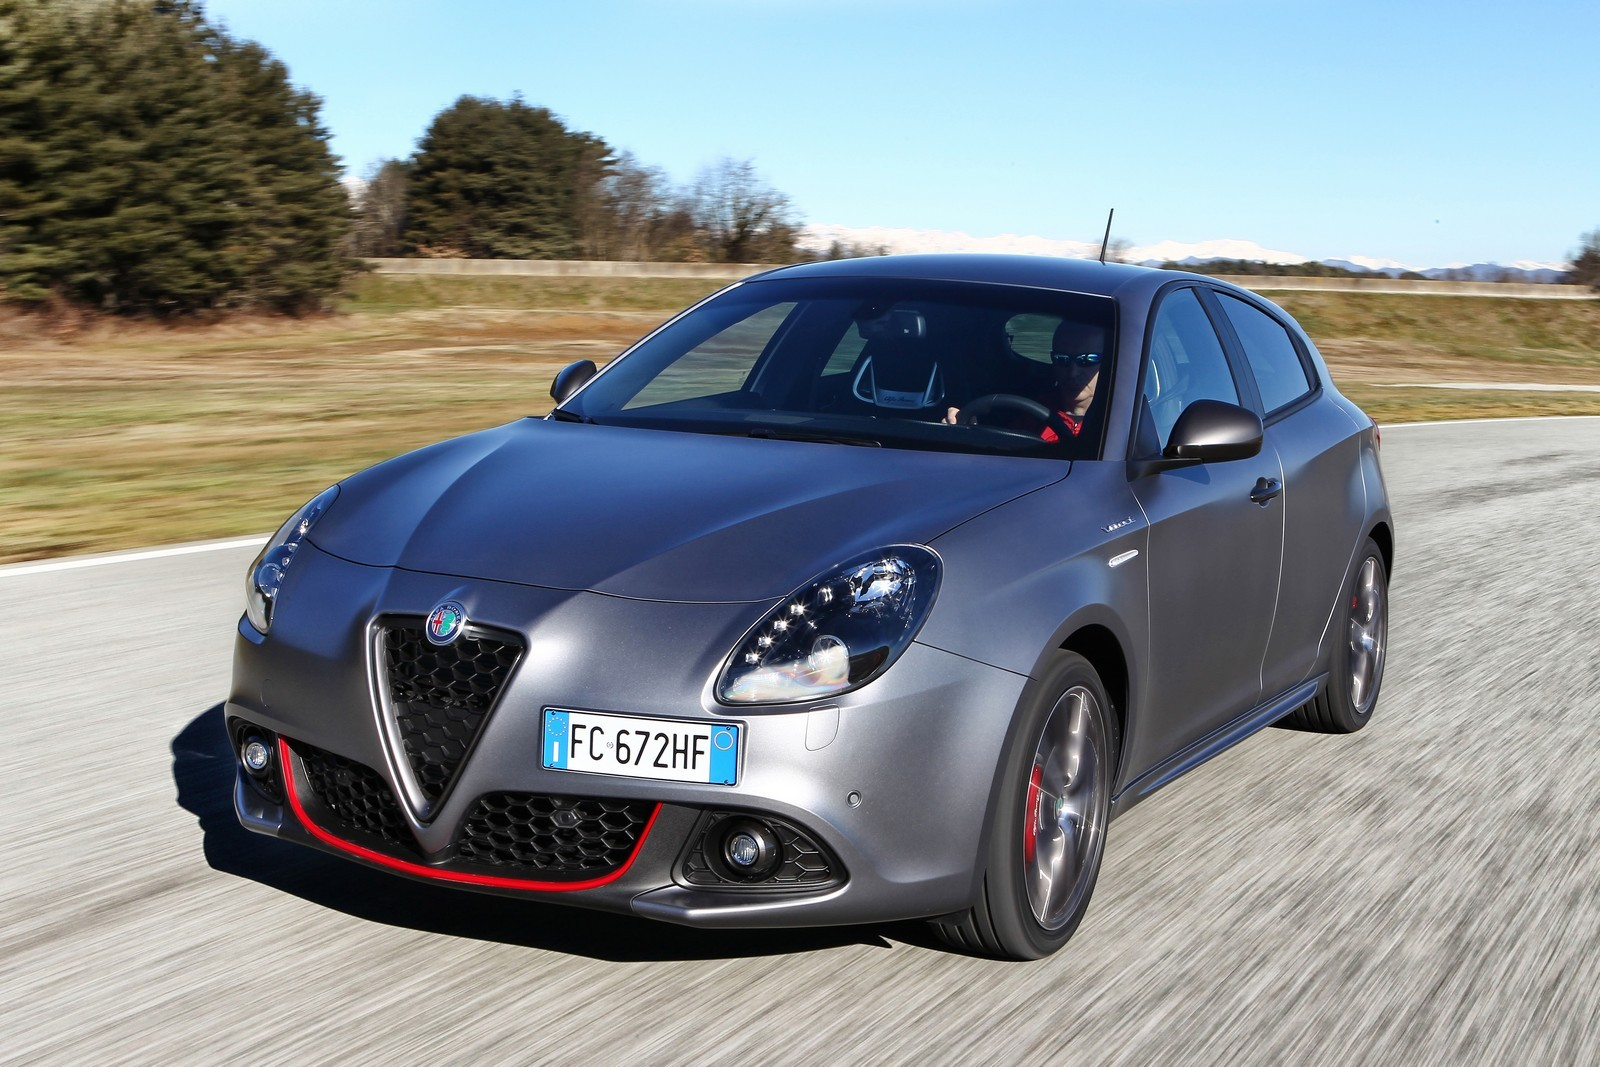 alfa romeo giulia models html with 2018 Alfa Romeo Giulietta Quadifoglio Rendered Looks Like A Squashed Stelvio 113045 on 18 in addition 2018 Alfa Romeo Giulietta Quadifoglio Rendered Looks Like A Squashed Stelvio 113045 in addition Alfa Romeo Mito Veloce Shows Up In Paris It Has A Facelift 111738 besides Scudetto Veloce MY 2016  7949 further Updated 2015 Renault Duster Receives New Engines In Russia Photo Gallery 97138.